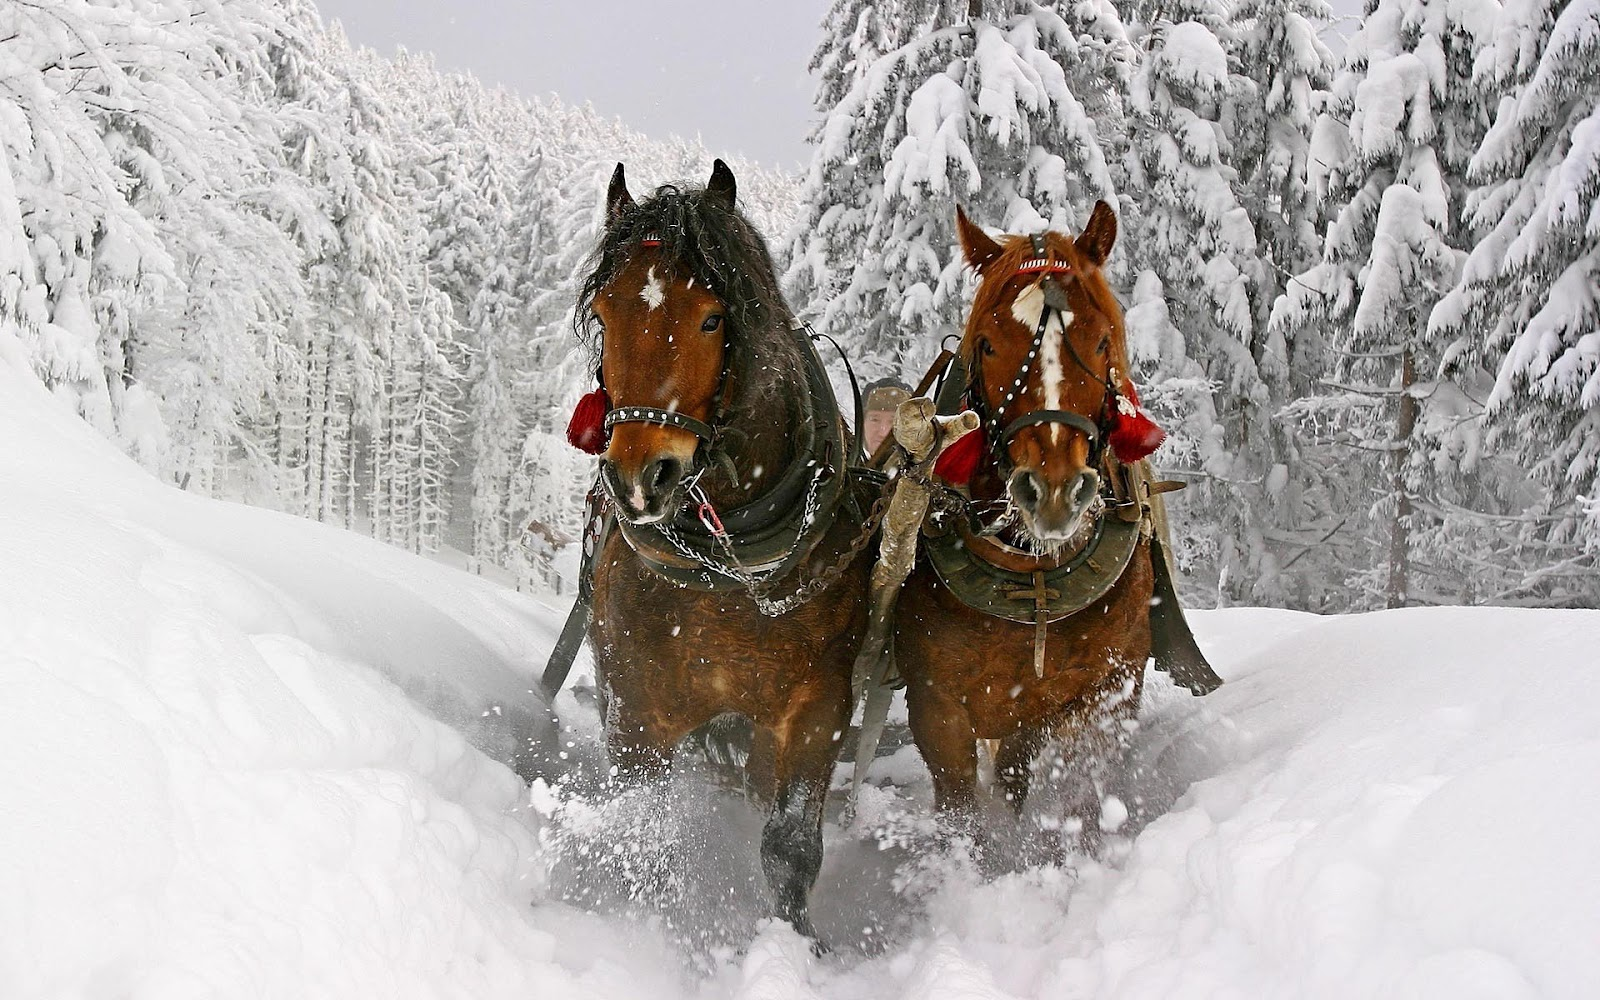 HD animal wallpaper with two brown horses running through the snow 1600x1000